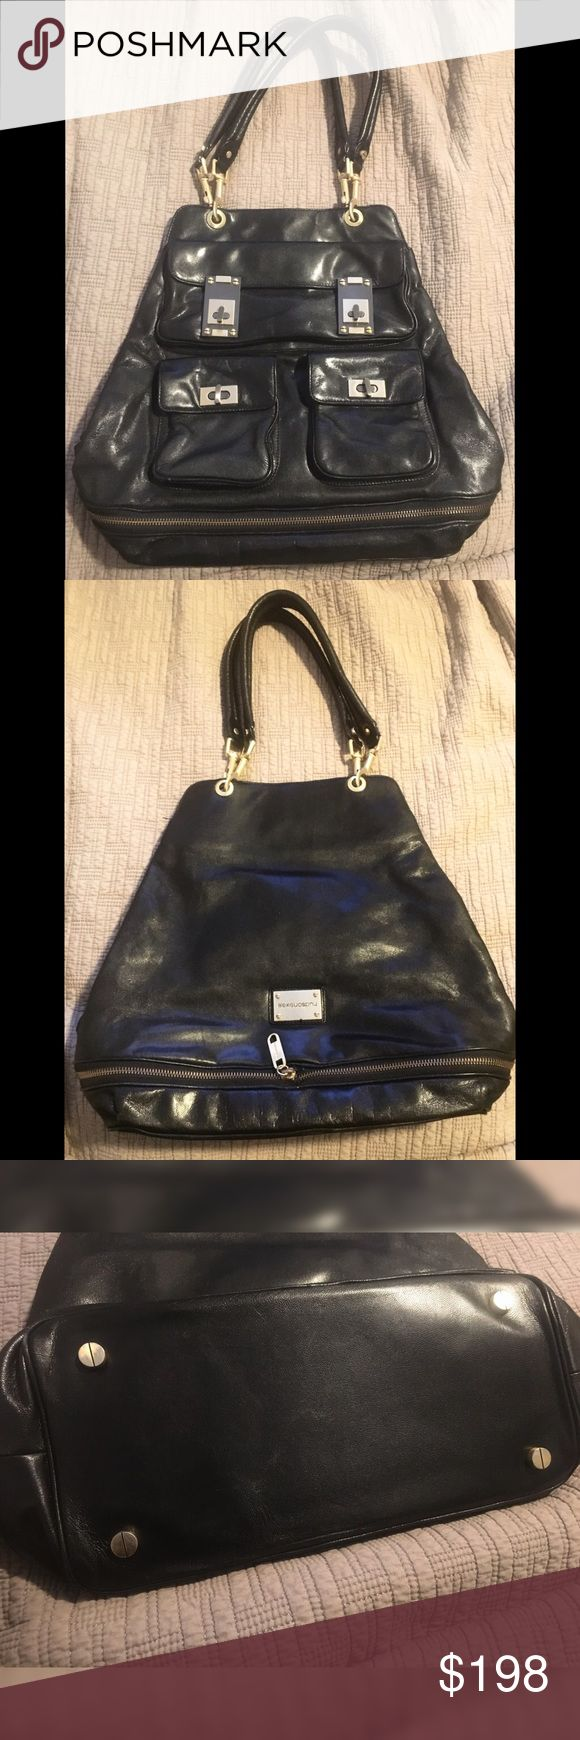 """Authentic Alexis Hudson Aspen Black Leather Bag This bag has been gently used a handful of times, with little to no sign of wear. The interior is clean. The leather is smooth and has bottom extension with zipper opening to access it. Inside large zipper pocket, 2 additional pickets and 3 outter pockets. Approx. 12"""" L. 14"""" H (not extended). Alexis Hudson Bags"""